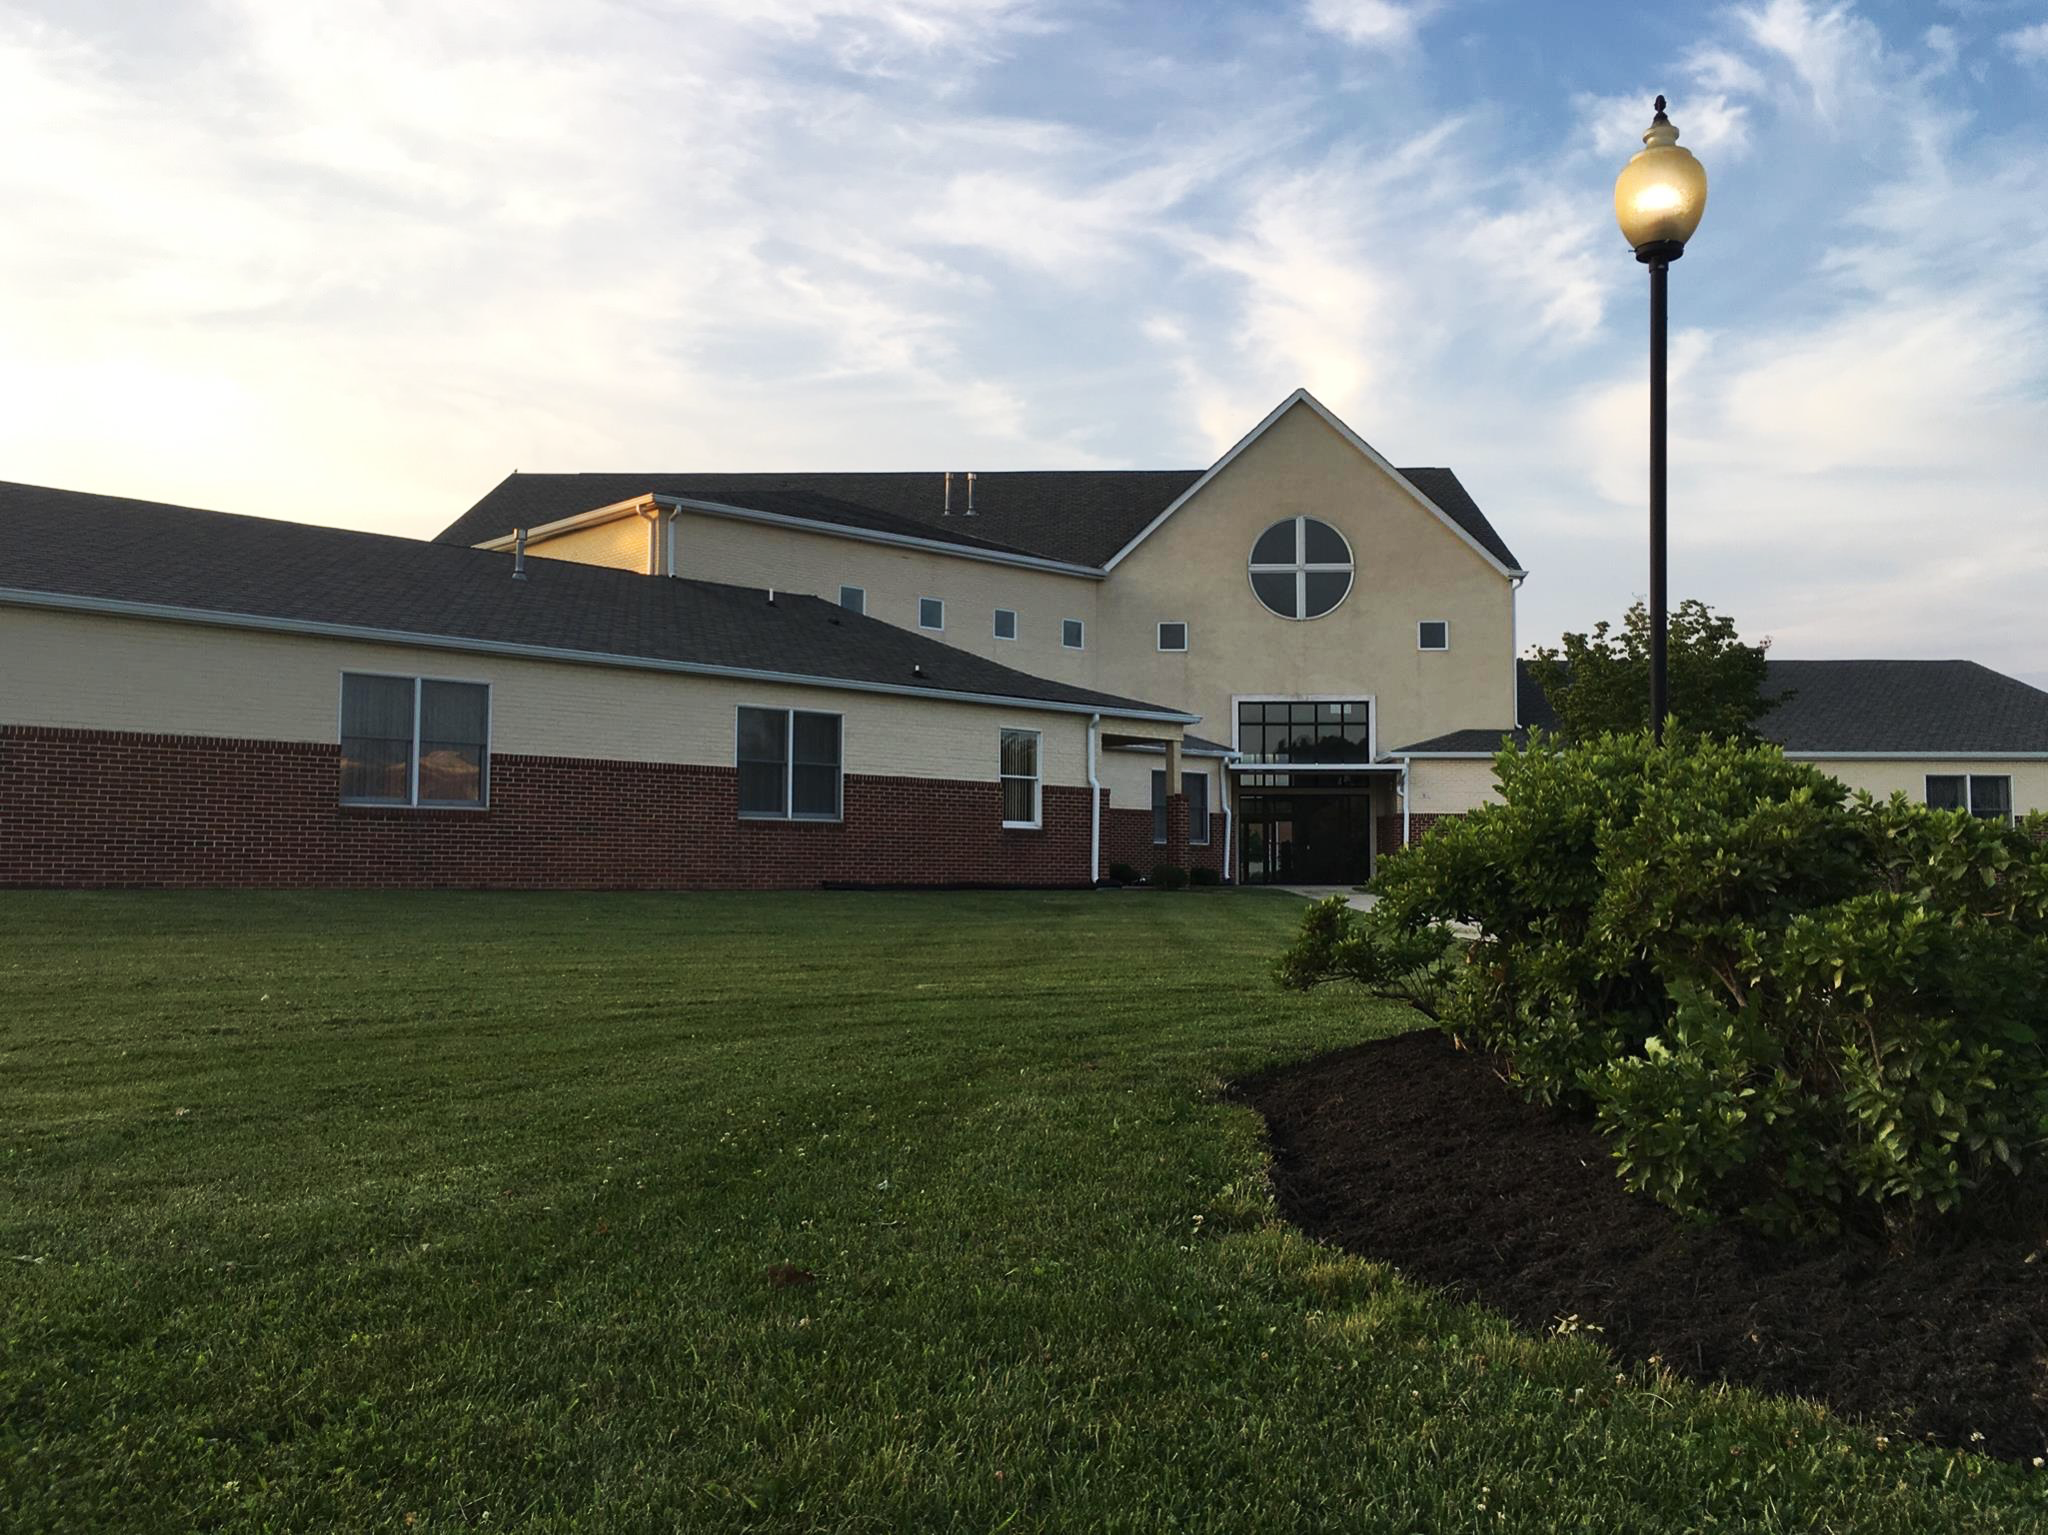 Join us on Sundays at 10 AMRobbinsville SDA Church2314 Route 33,Robbinsville, NJ 08691The Lifetree Café opens at 9:30 AMserving free breakfast items. -